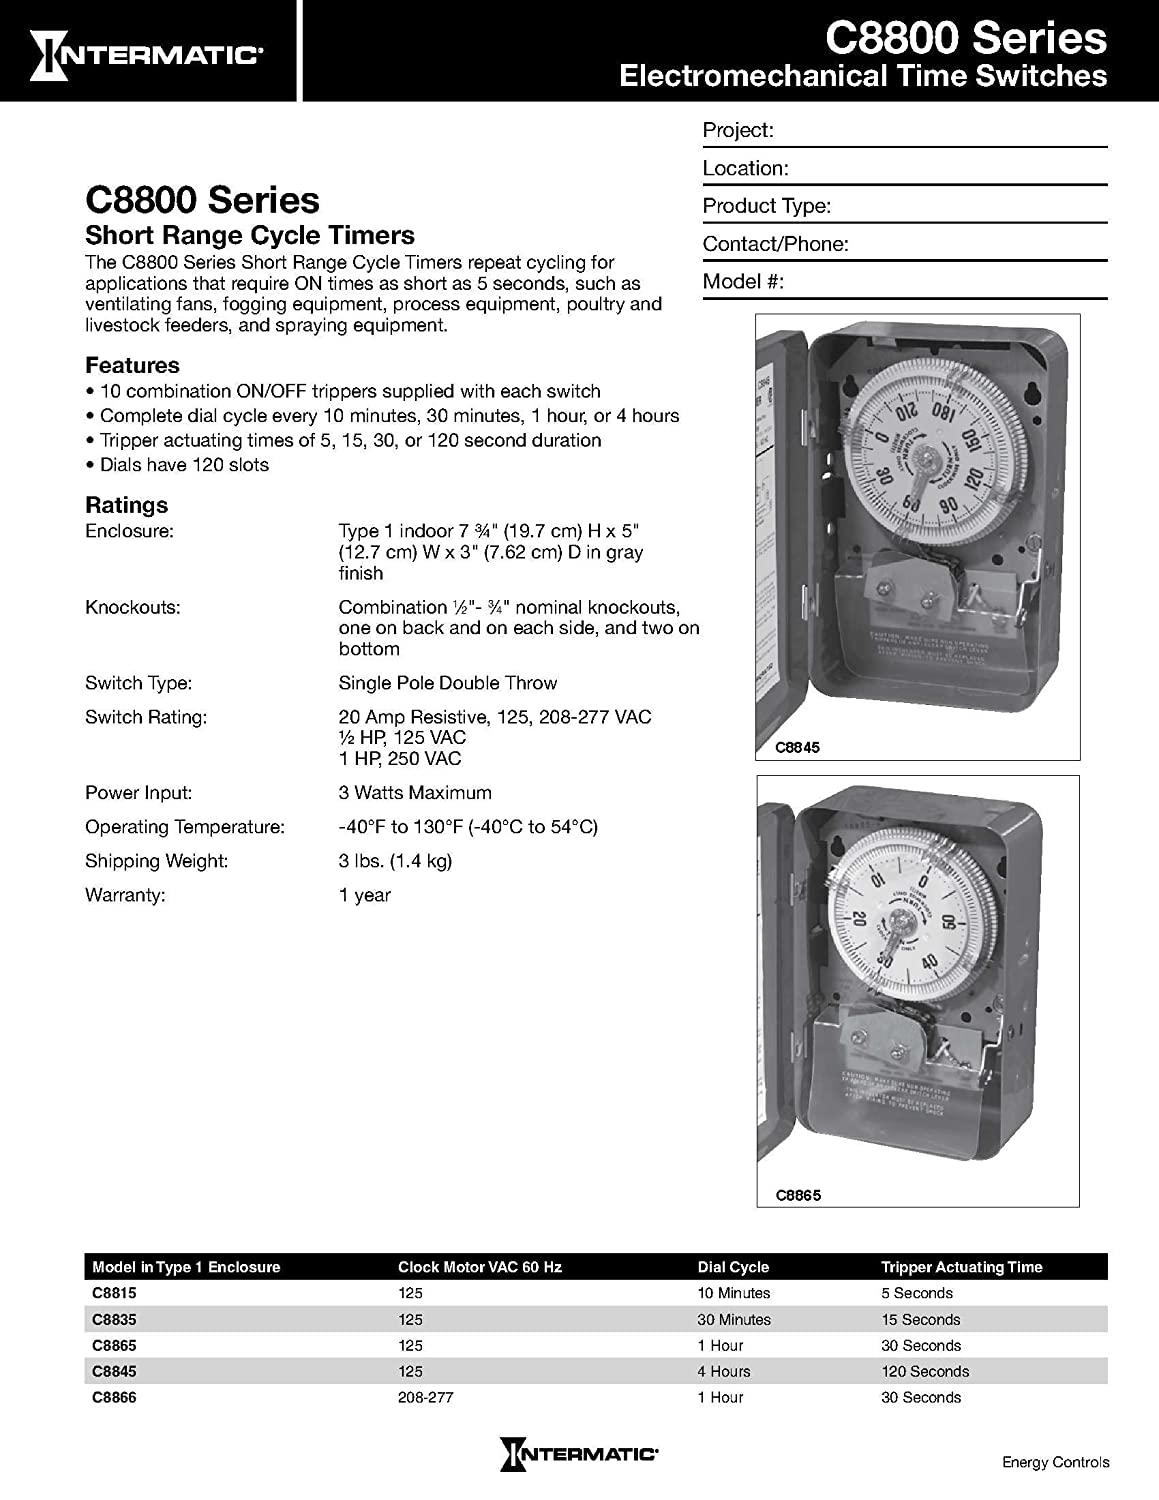 Intermatic C8866 Timer Diagram For Get Free Image About Wiring